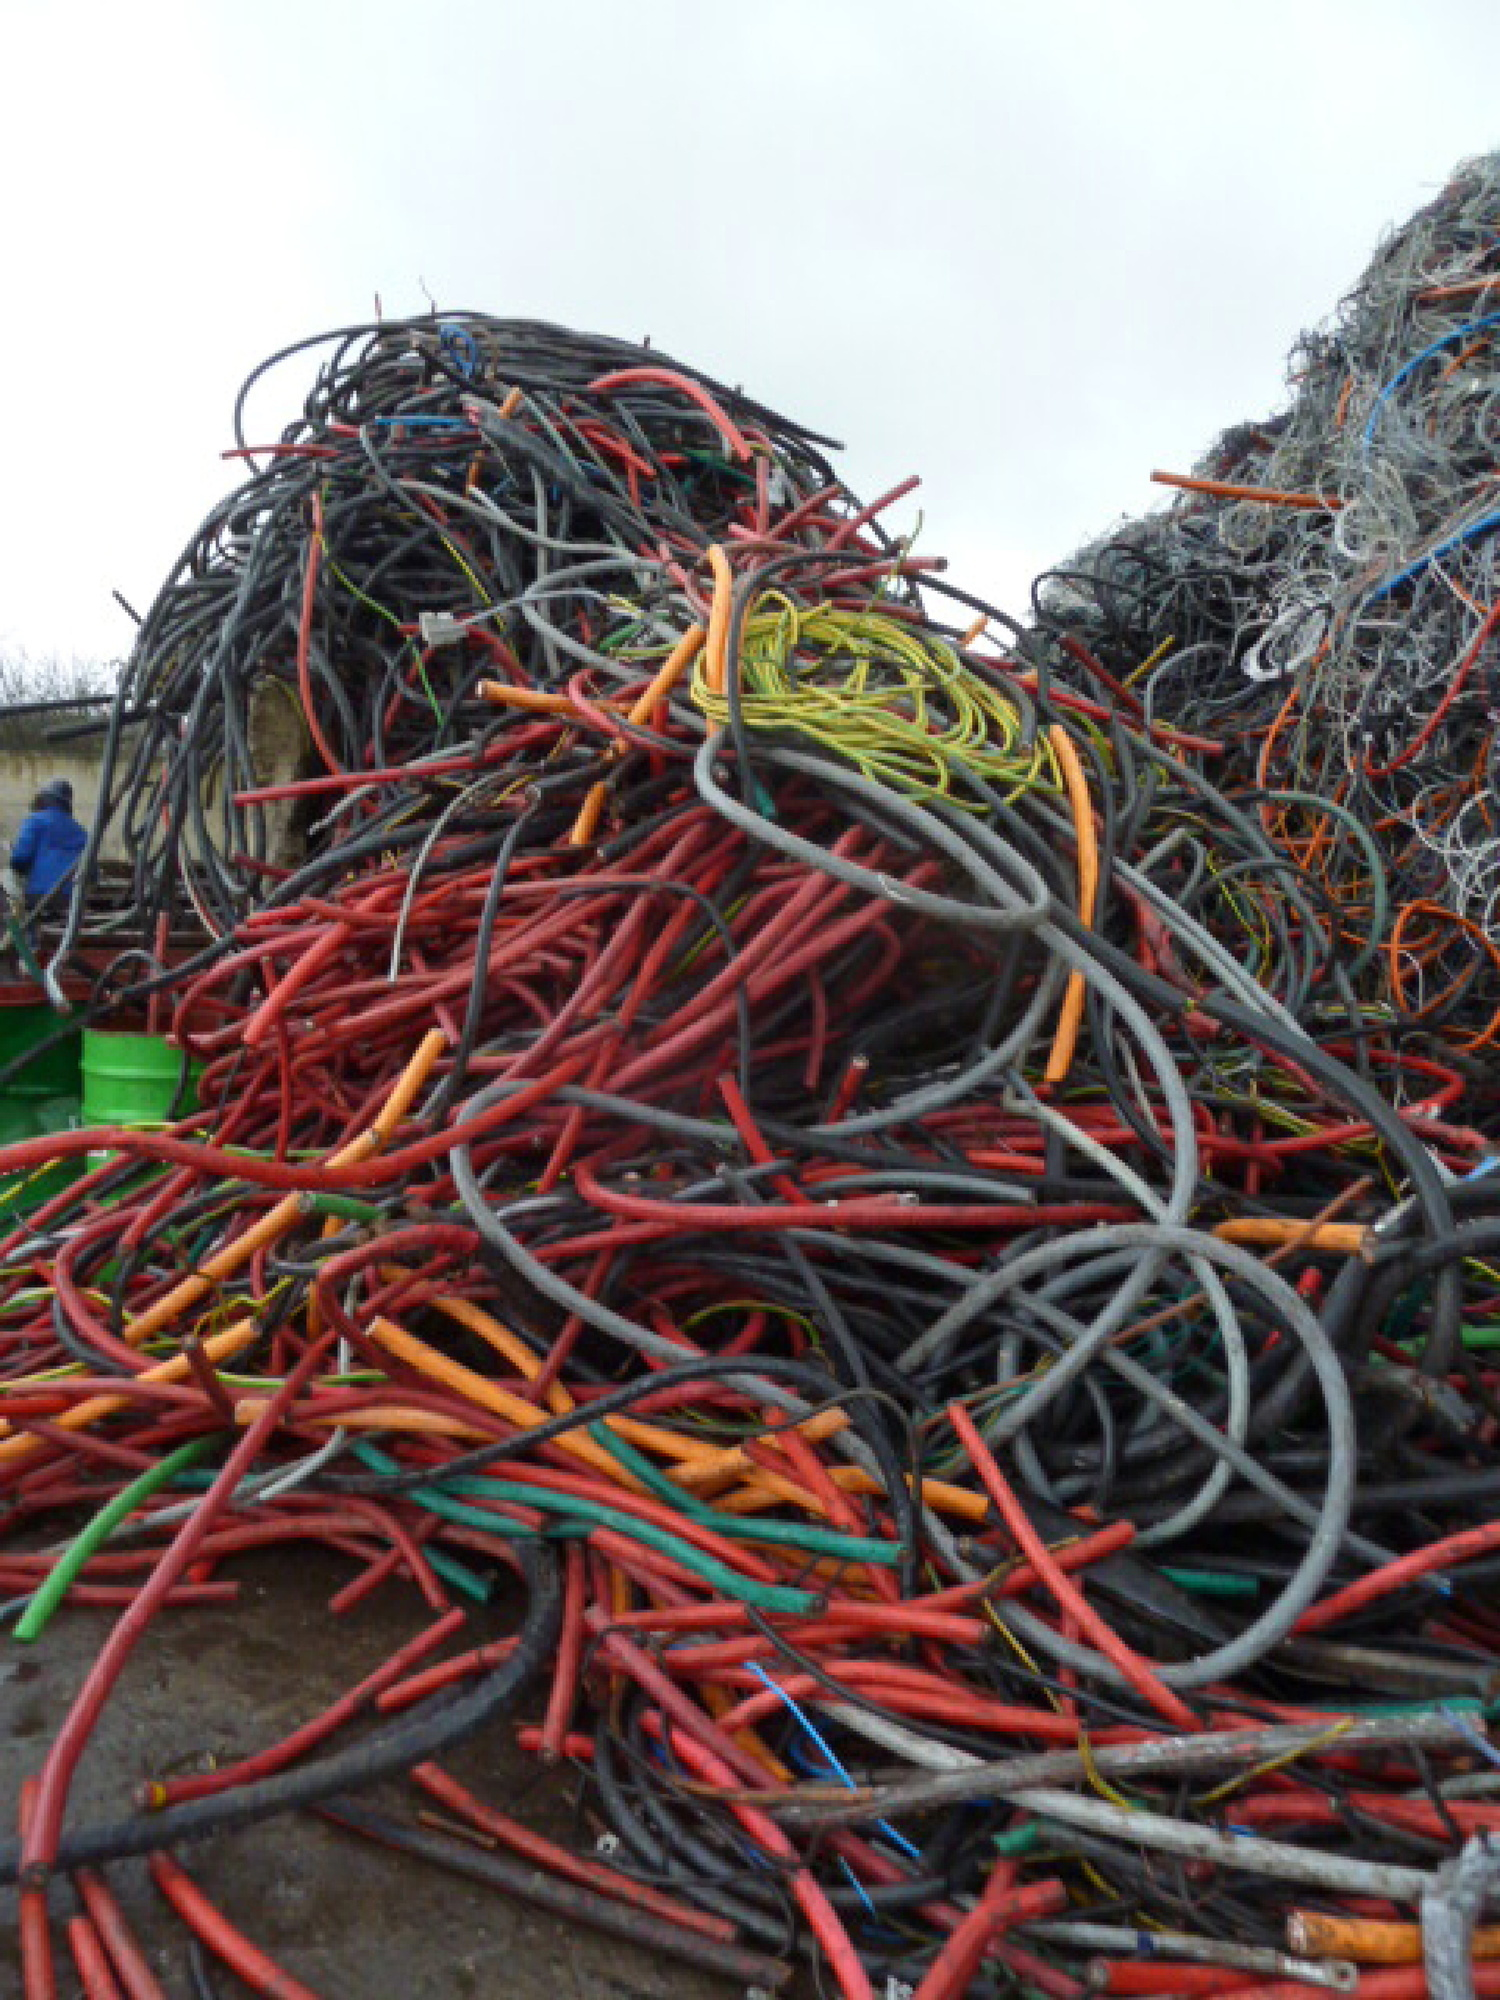 Insulated Copper Cables • Partners Metal - Recycling and Trading of ...